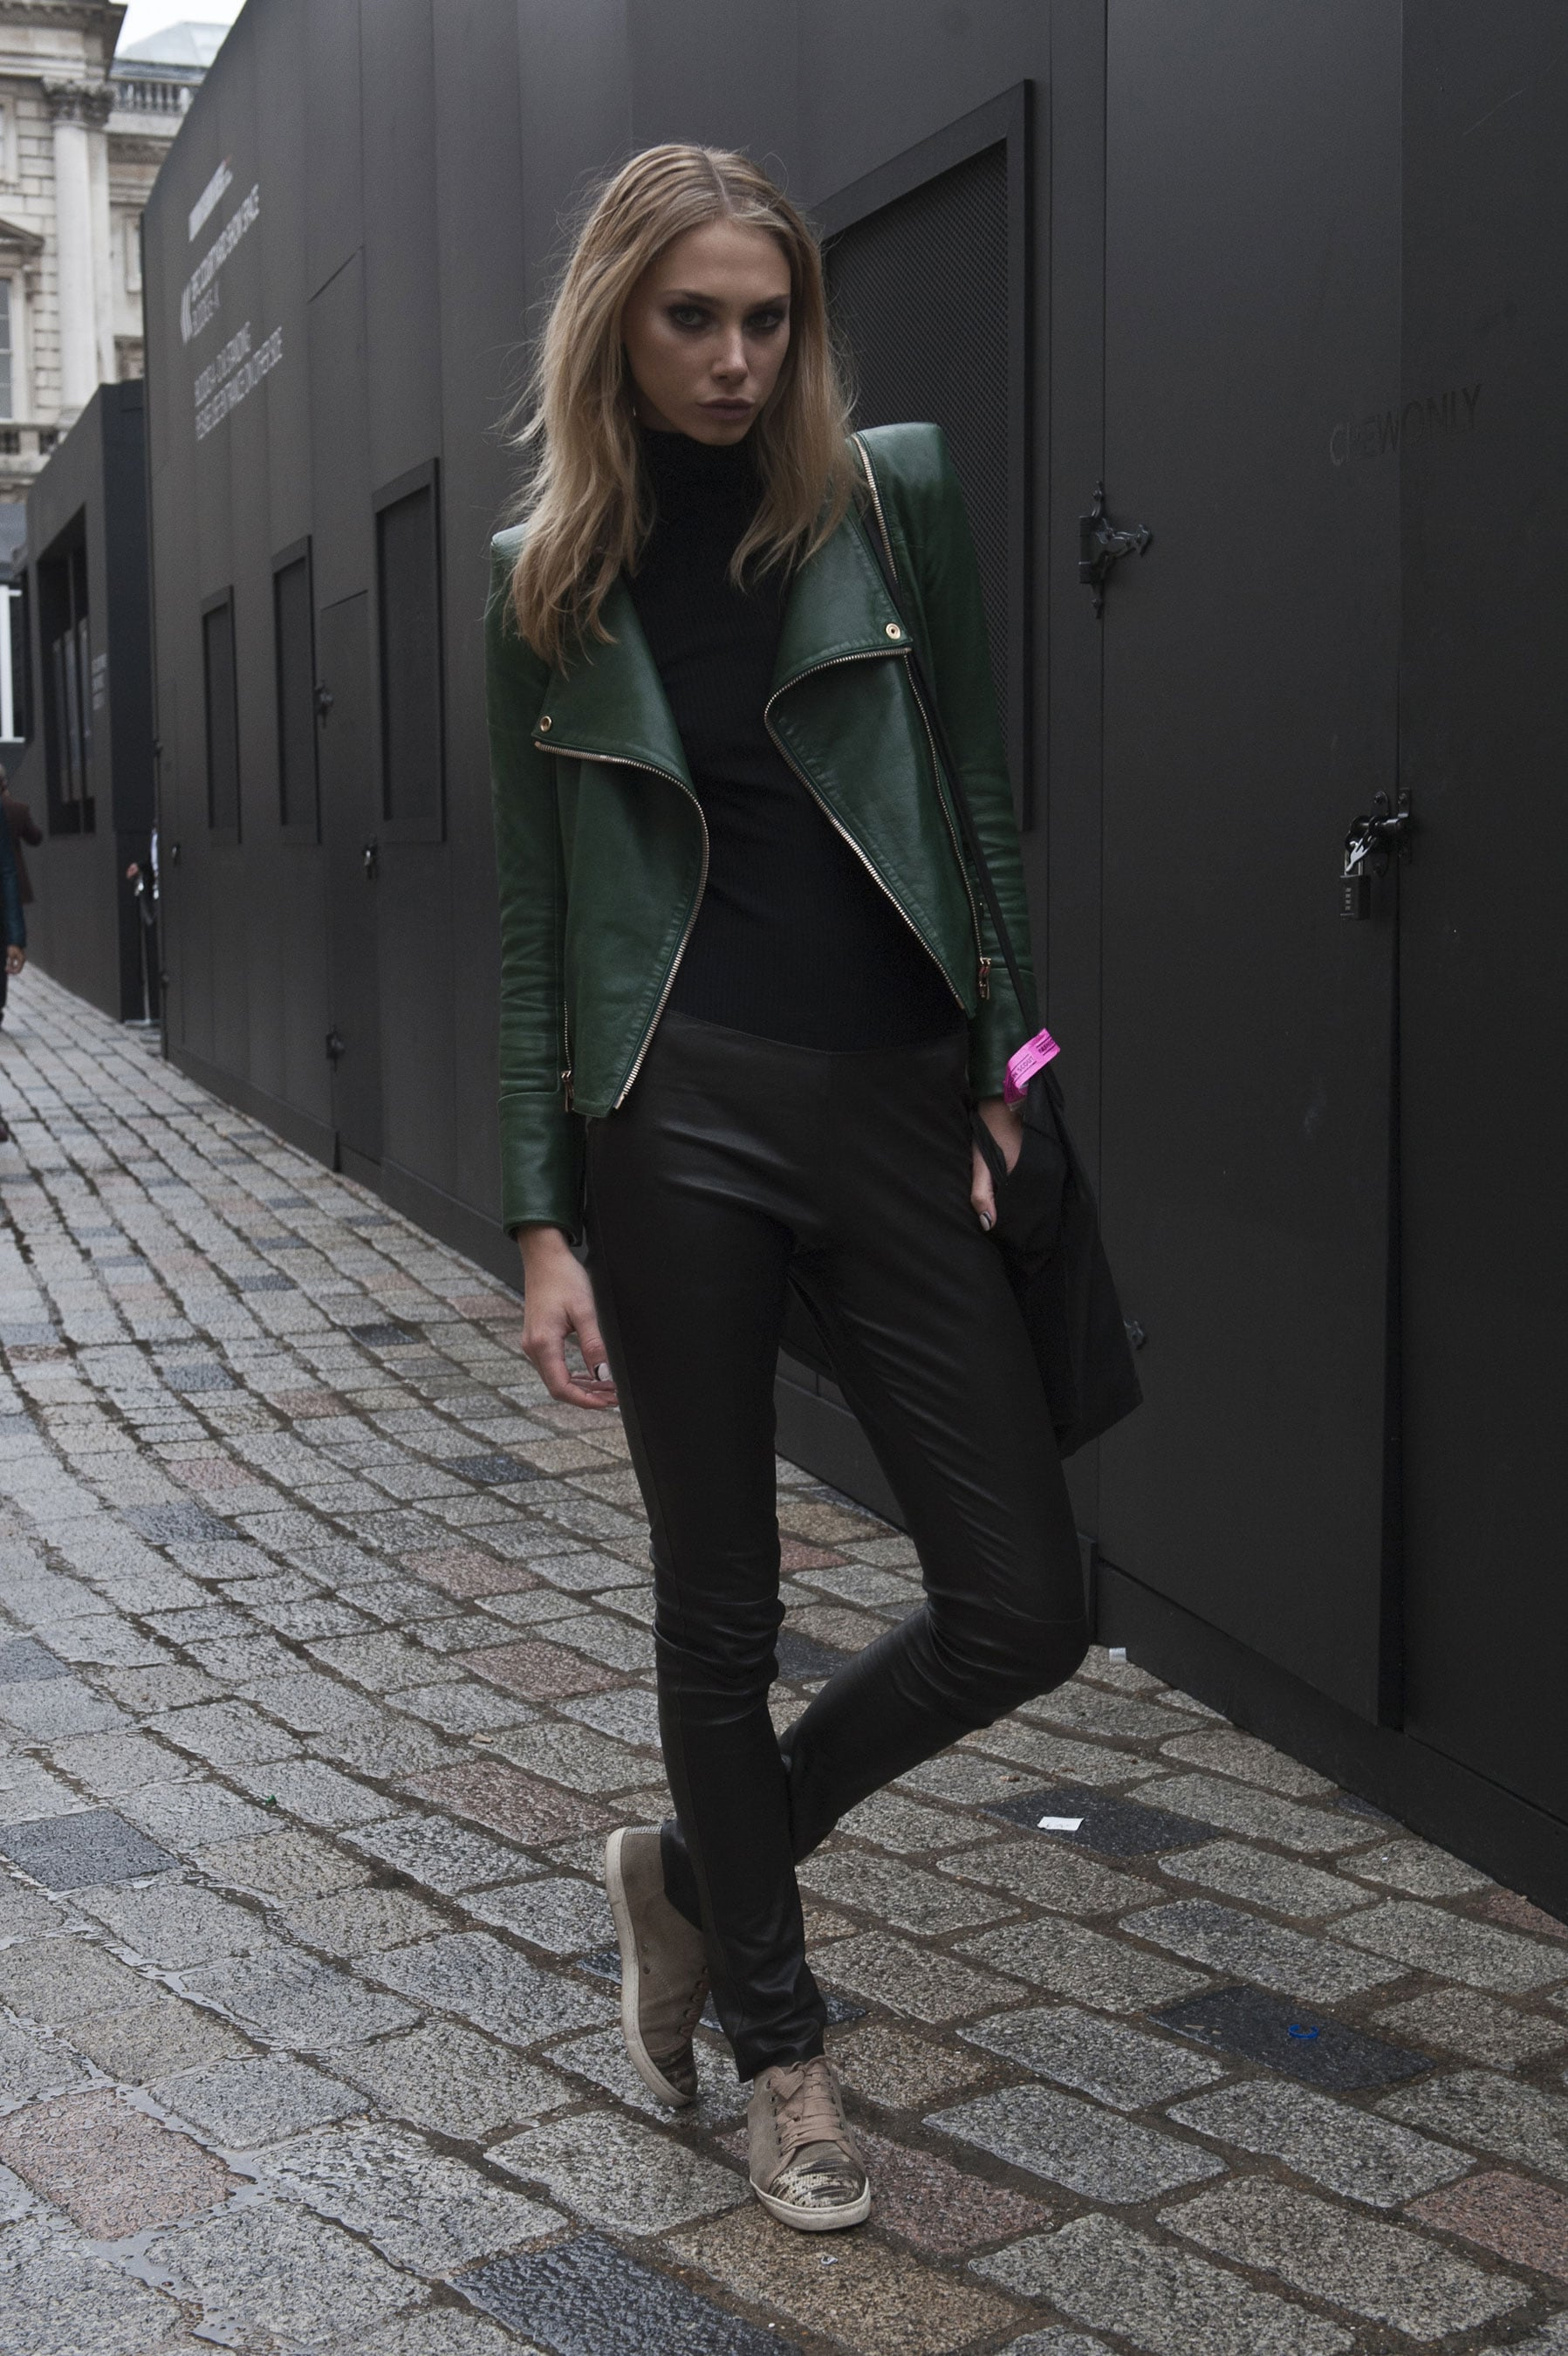 We've developed quite a crush on that hunter green leather jacket.